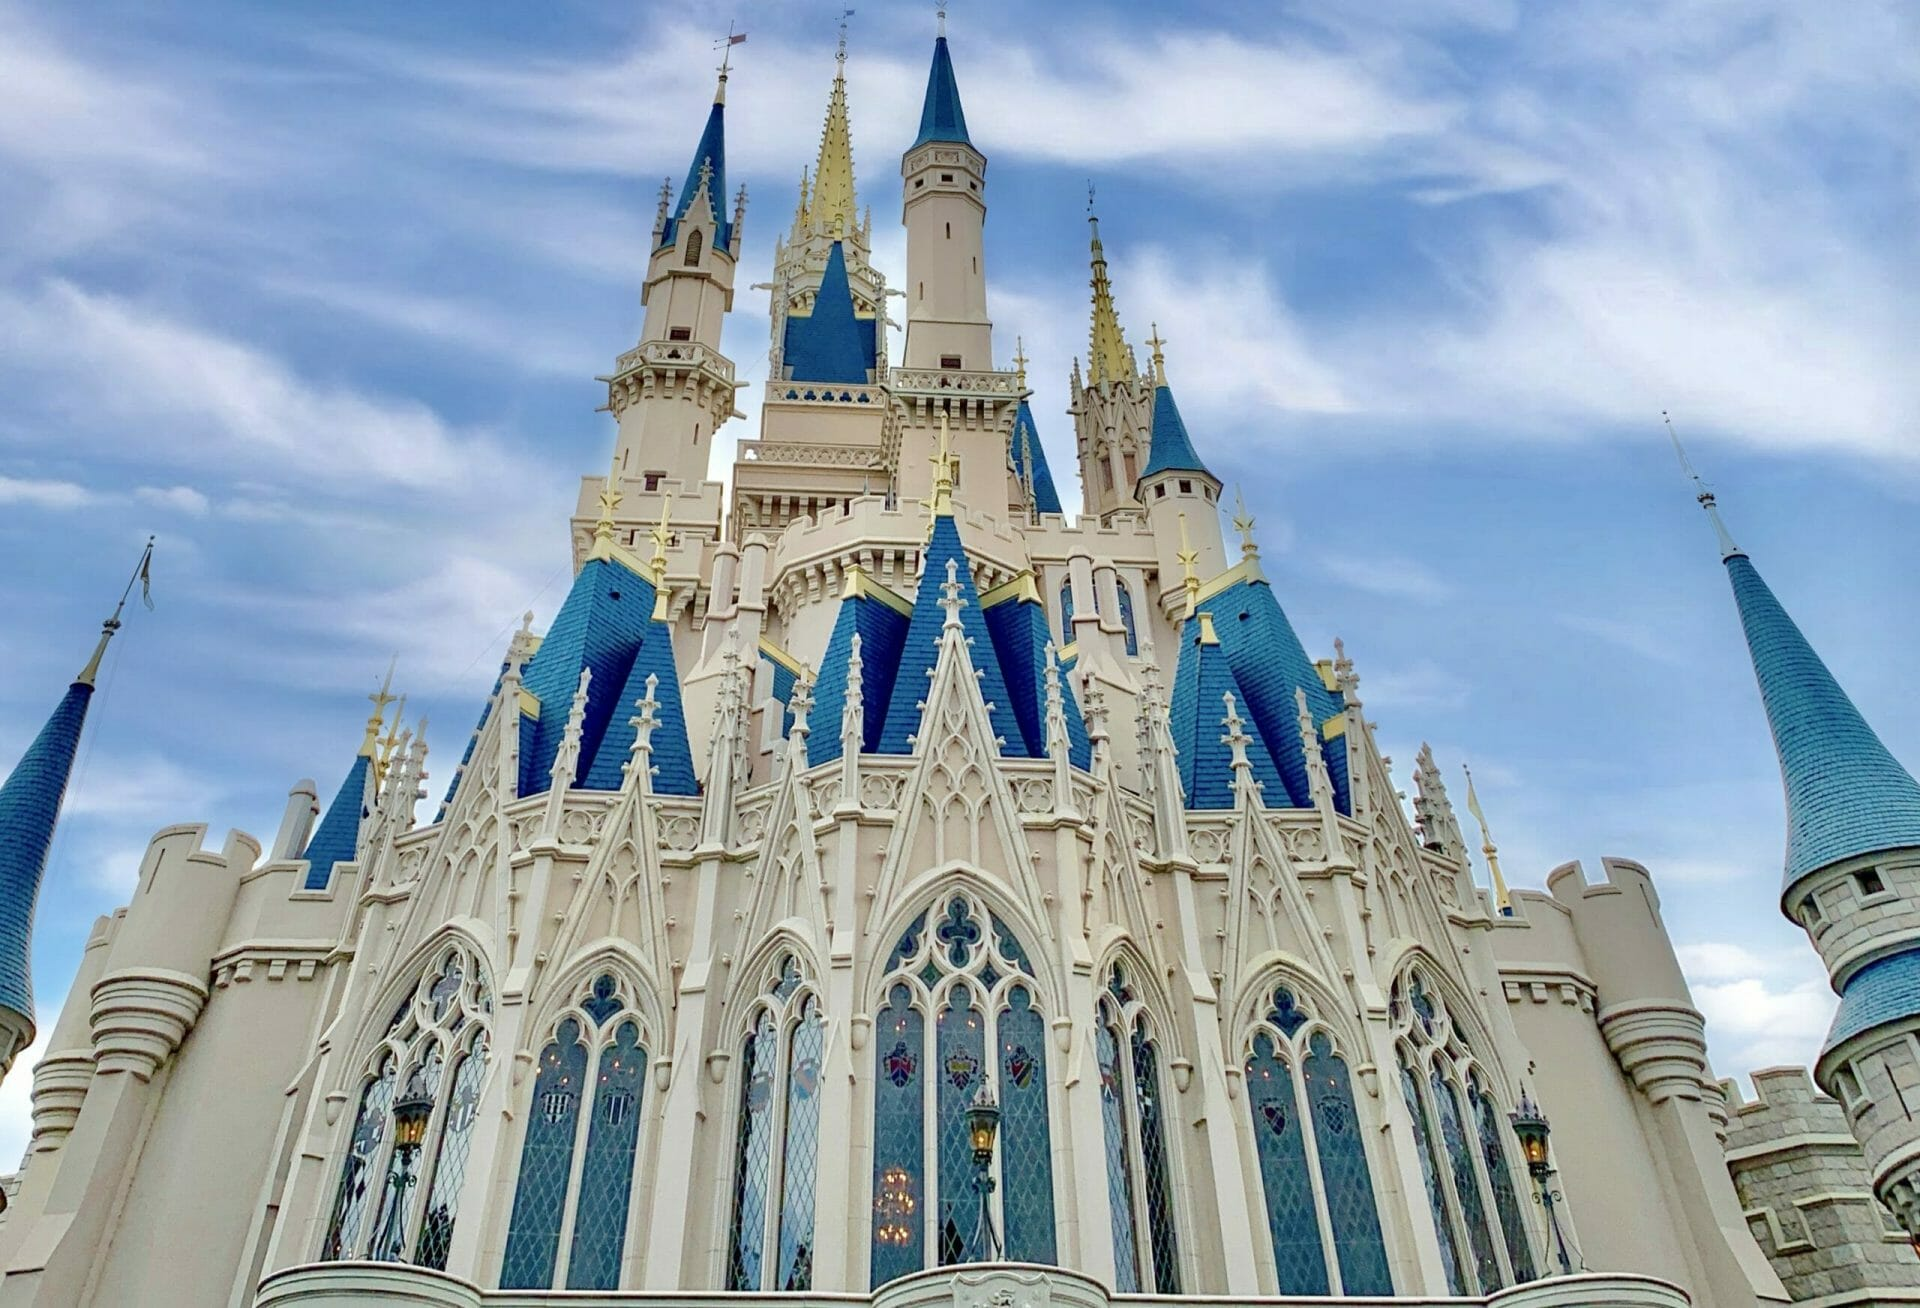 5 Ways to Enjoy the Disney Parks at Home